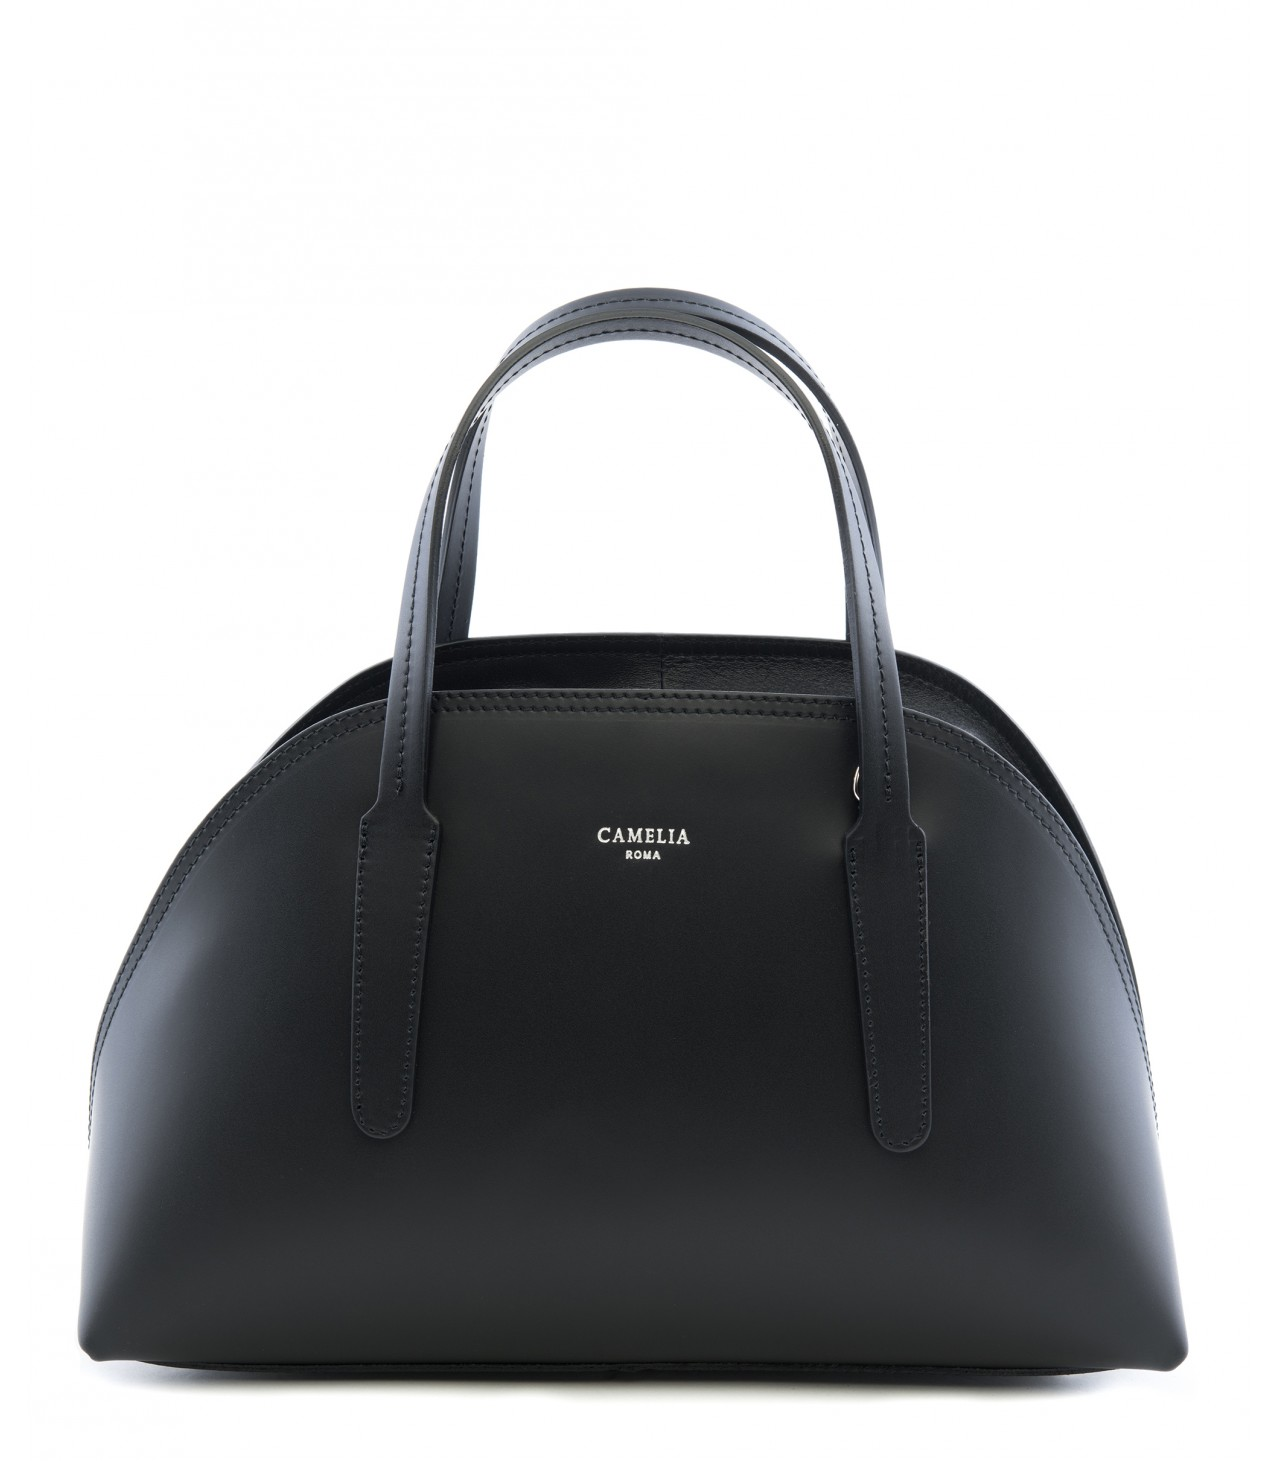 LEATHER HANDBAG BAULETTO_0007_NE COLOR: BLACK